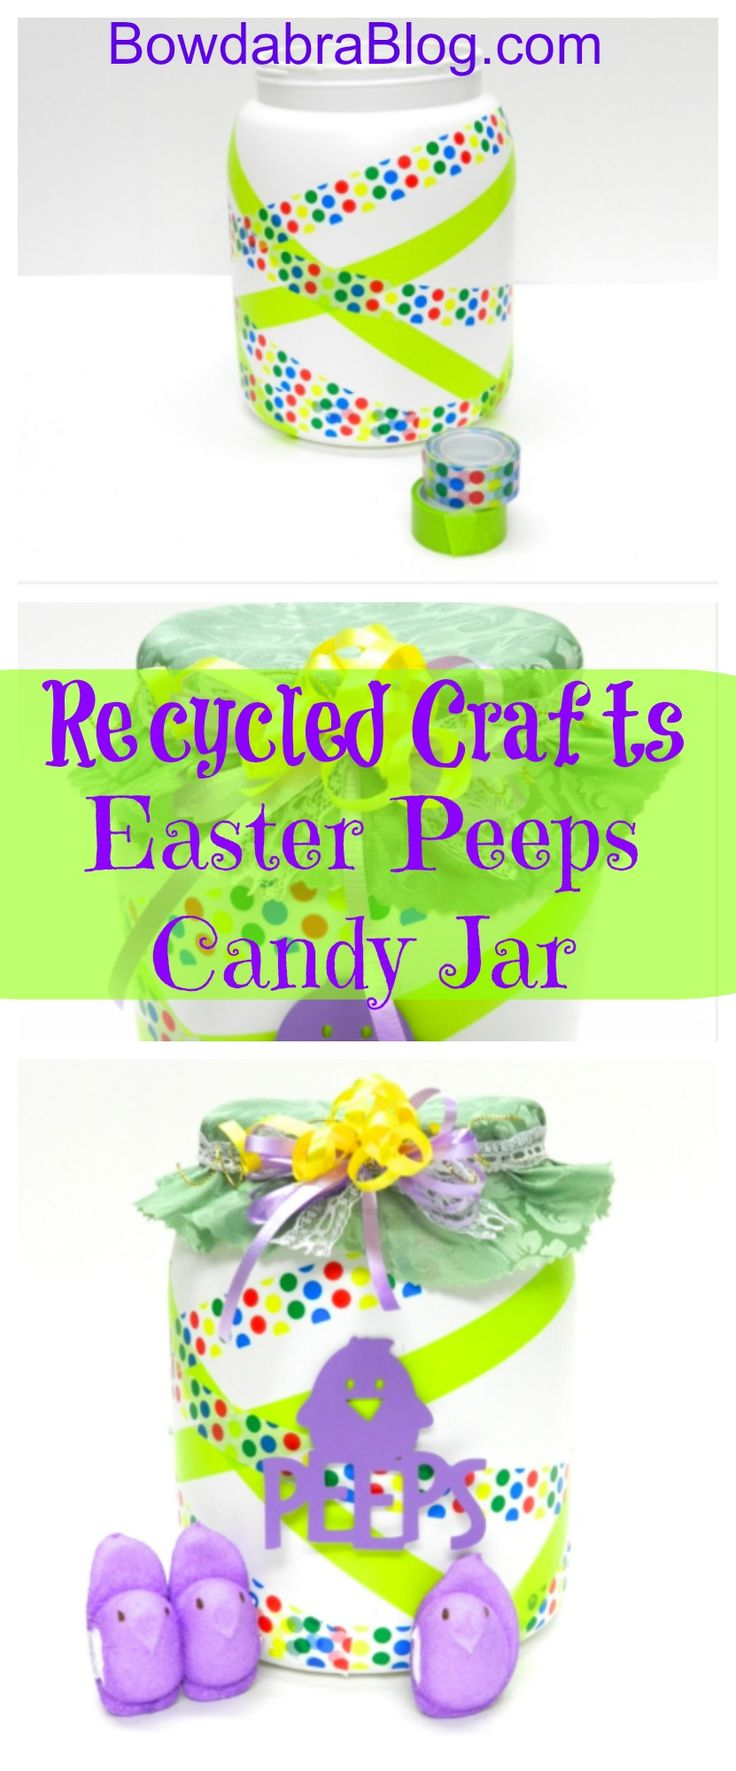 Store your Easter peeps in an airtight container using a recycled plastic jar with lid and decorate the container with a Bowdabra bow.